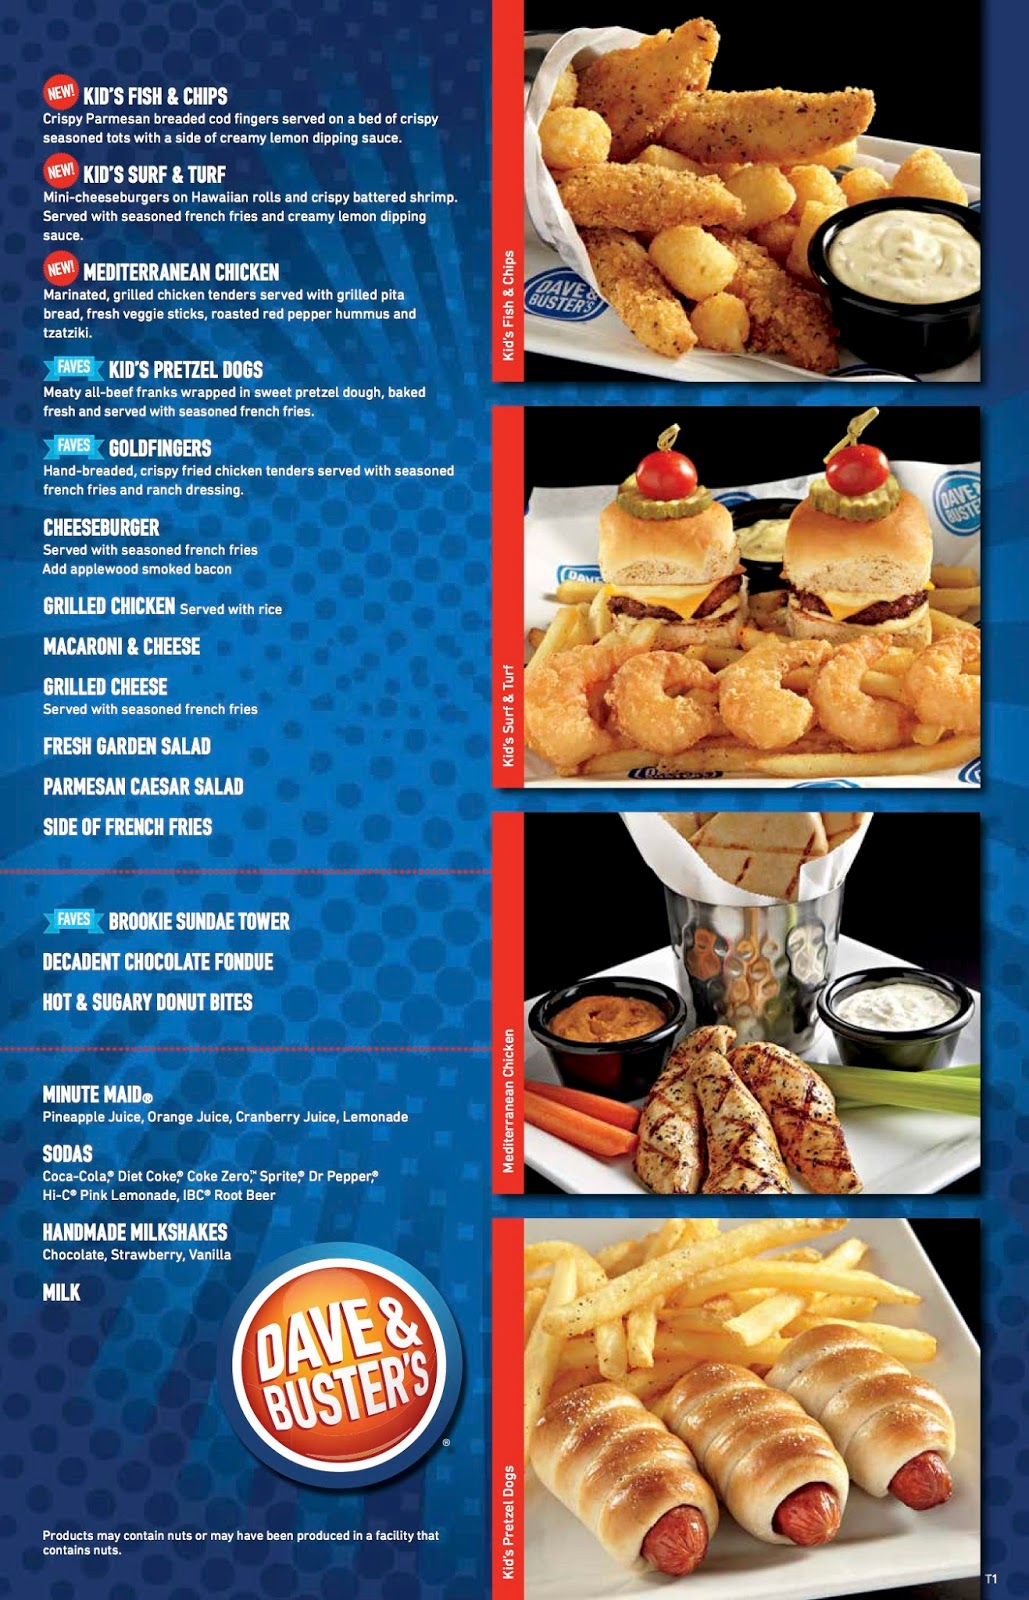 88 rows· Jan 05, · Dave And Buster's Menu Prices, Price List. List of prices for all items on .